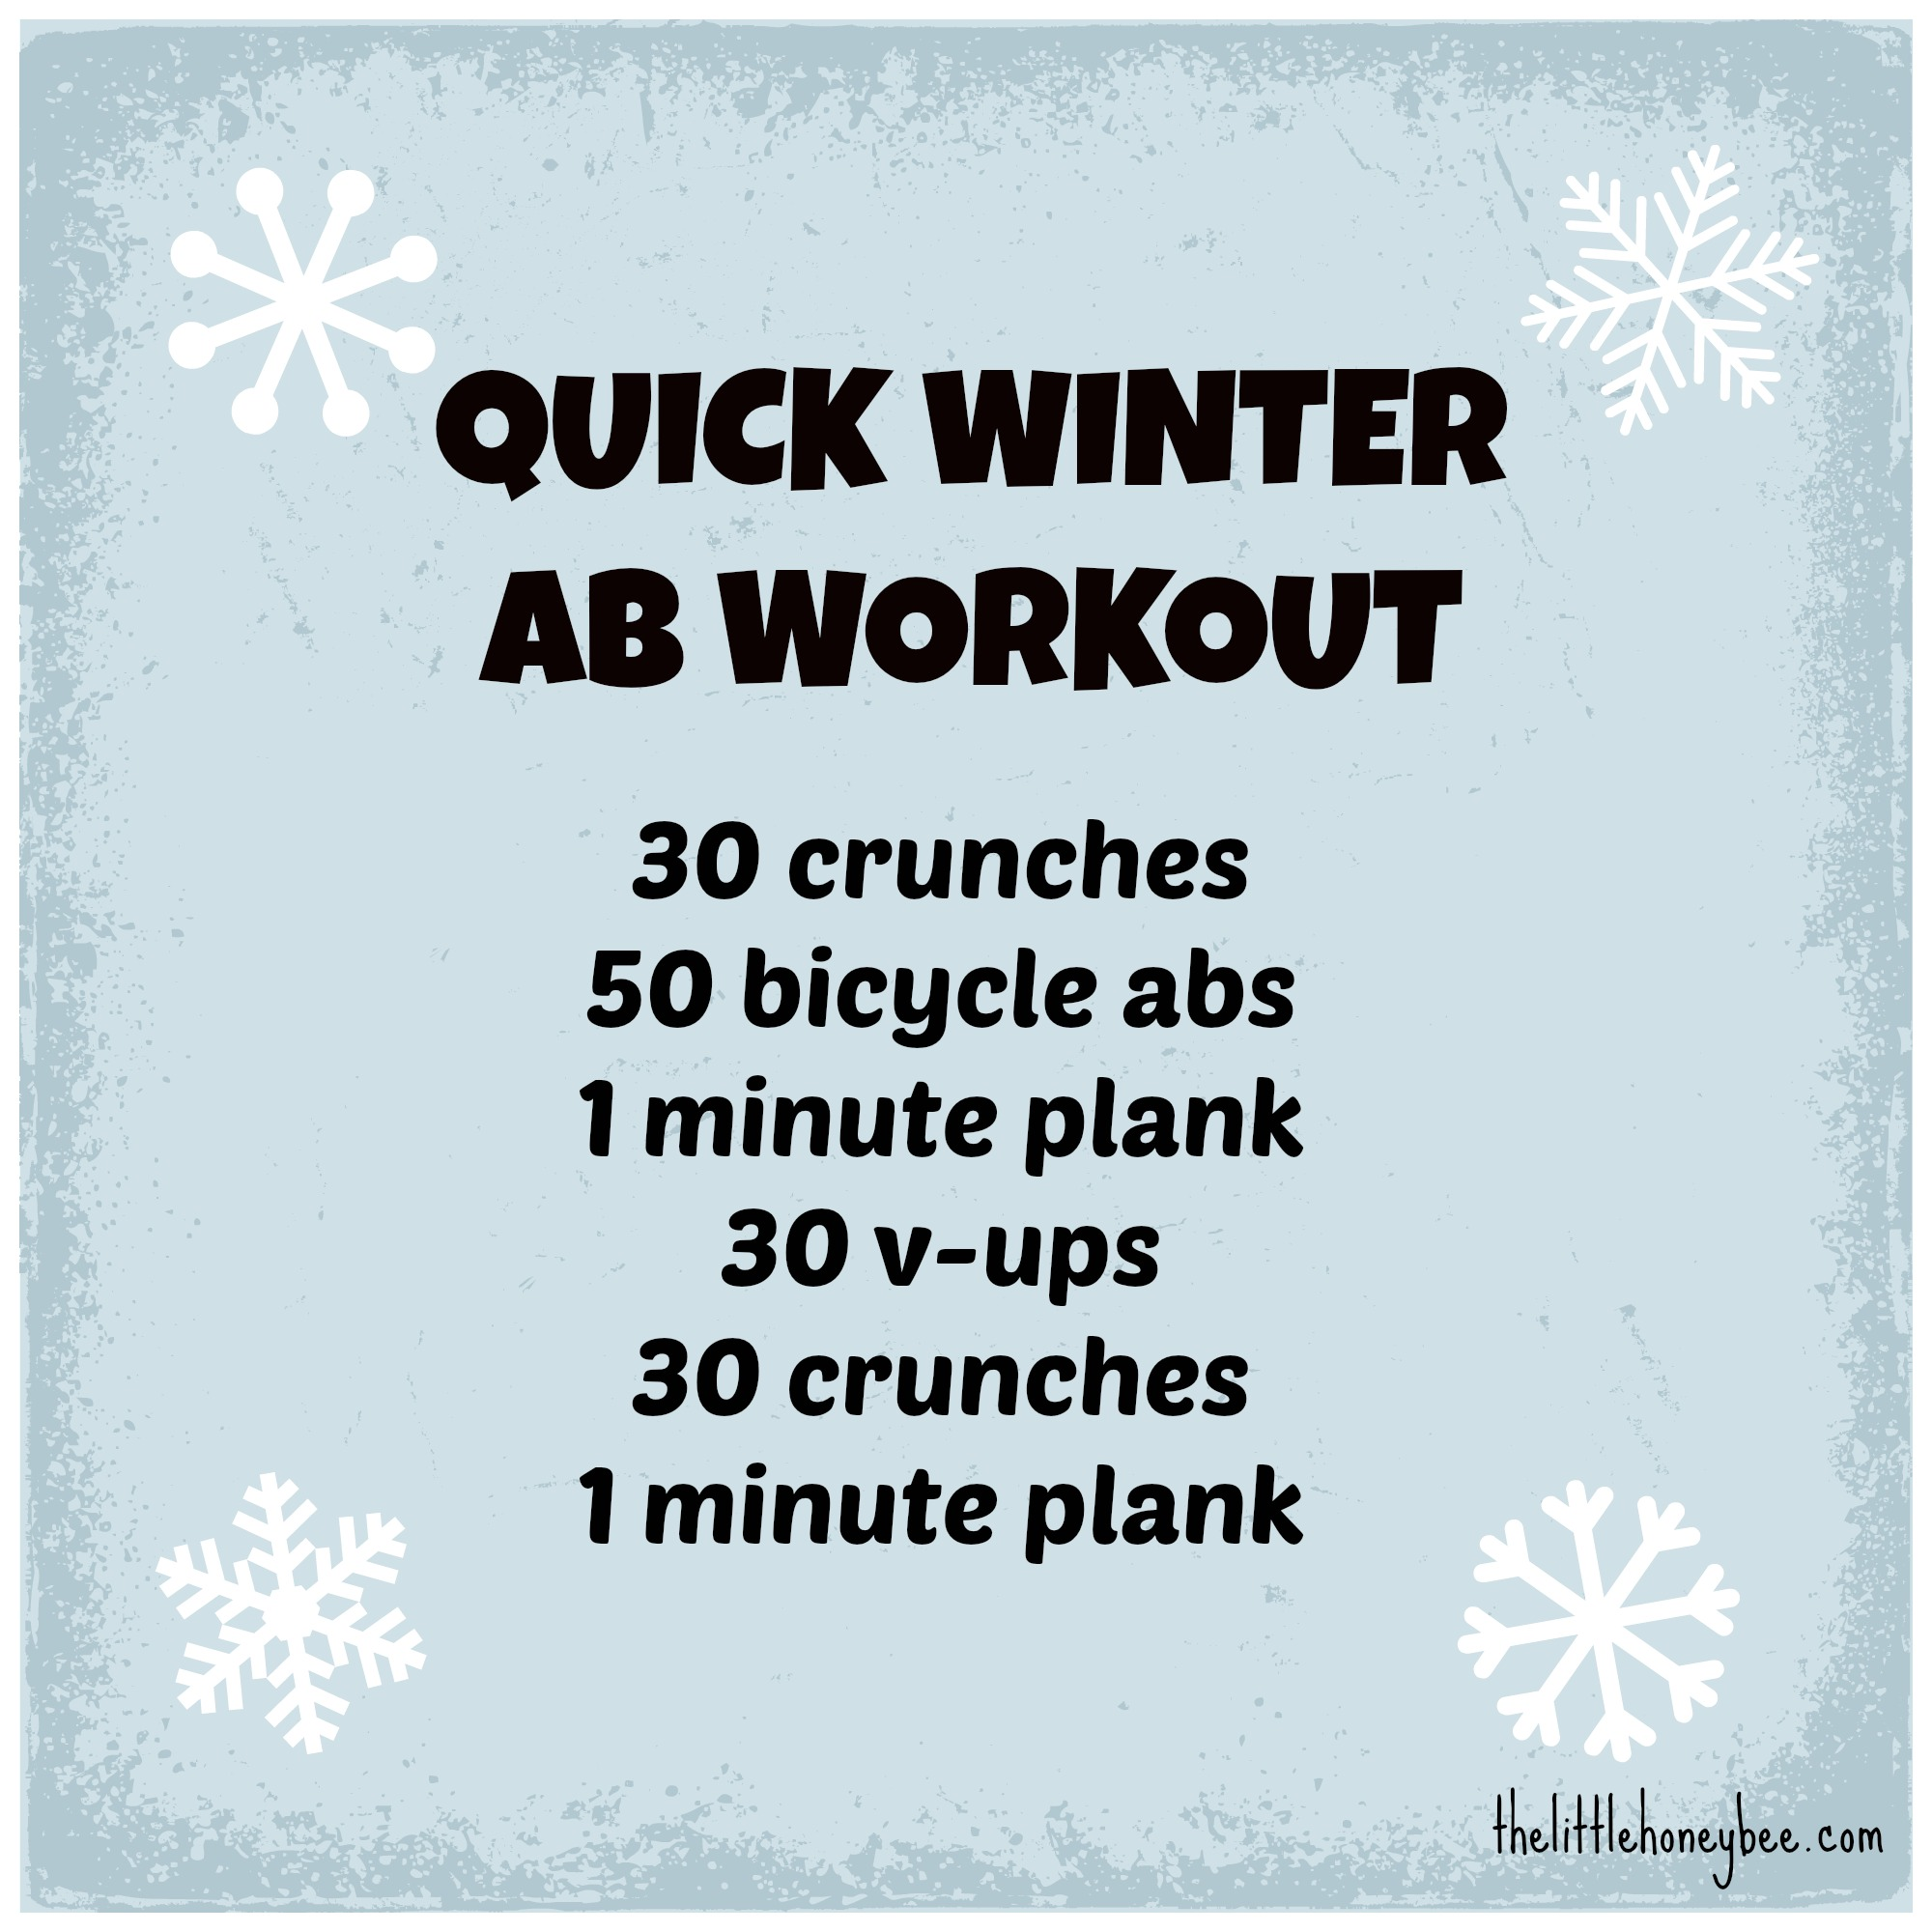 Shawn Johnson's The Body Department - Quick Winter Ab Workout